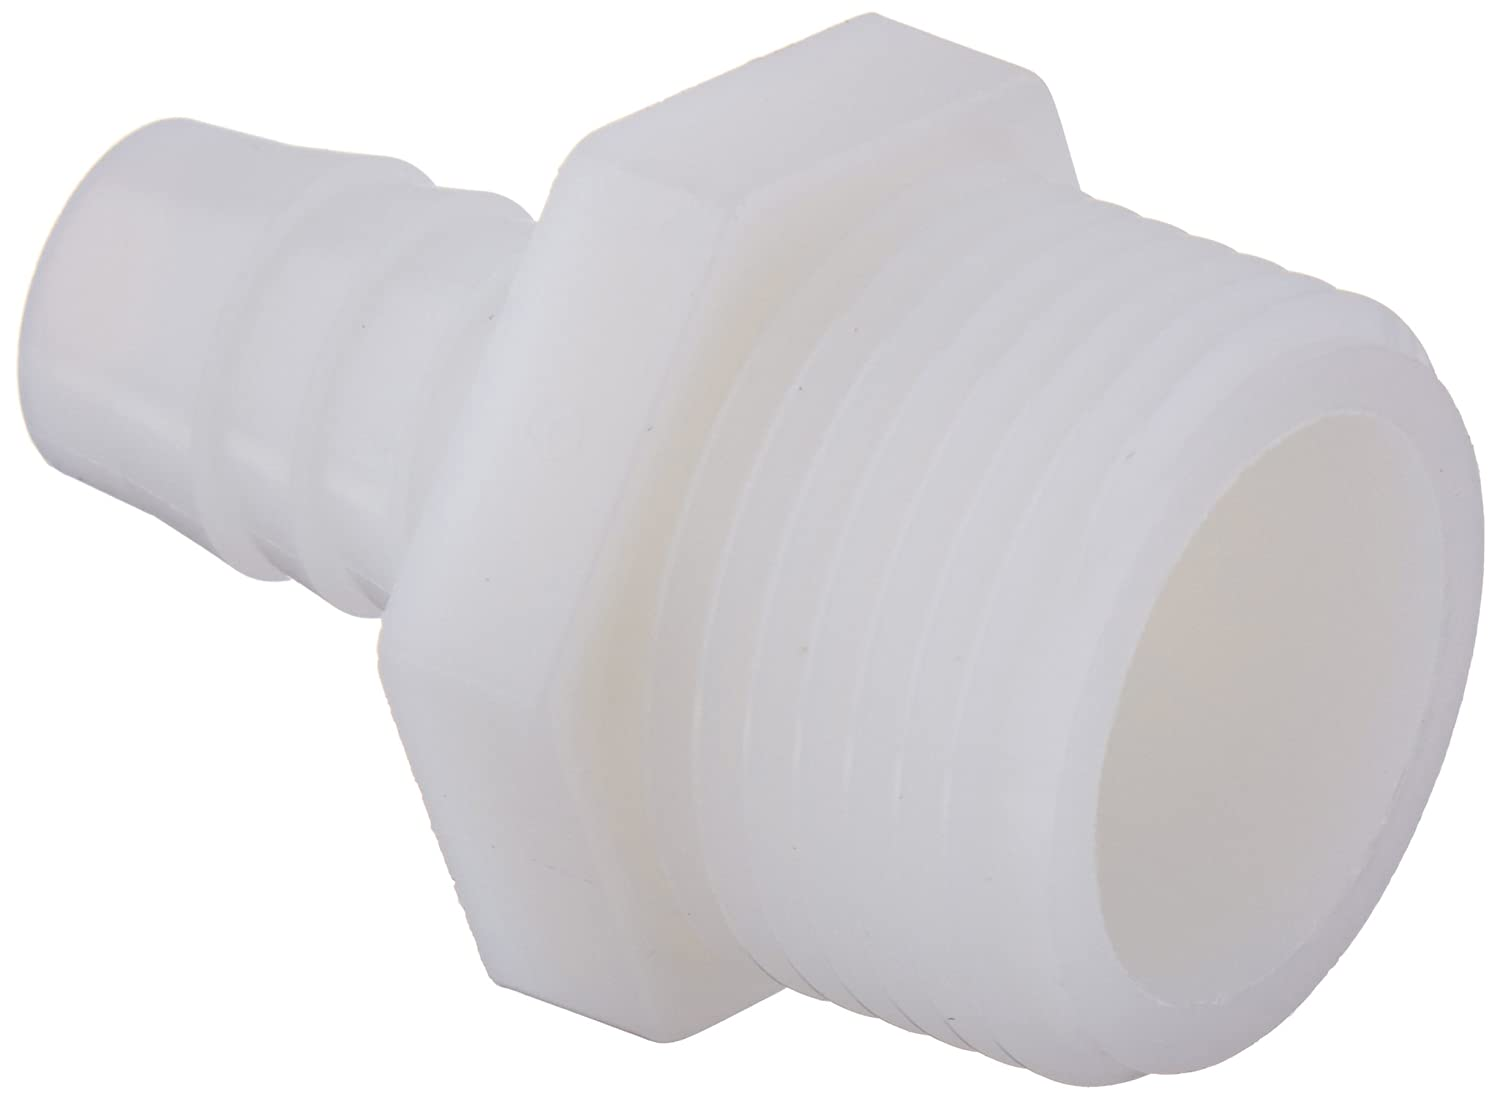 White Nylon 90 Degree Angle Pack of 20 Parker Hannifin 329HB-3-2N-pk20 Par-Barb Male Elbow Fitting 3//16 Hose Barb x 1//8 Male NPT